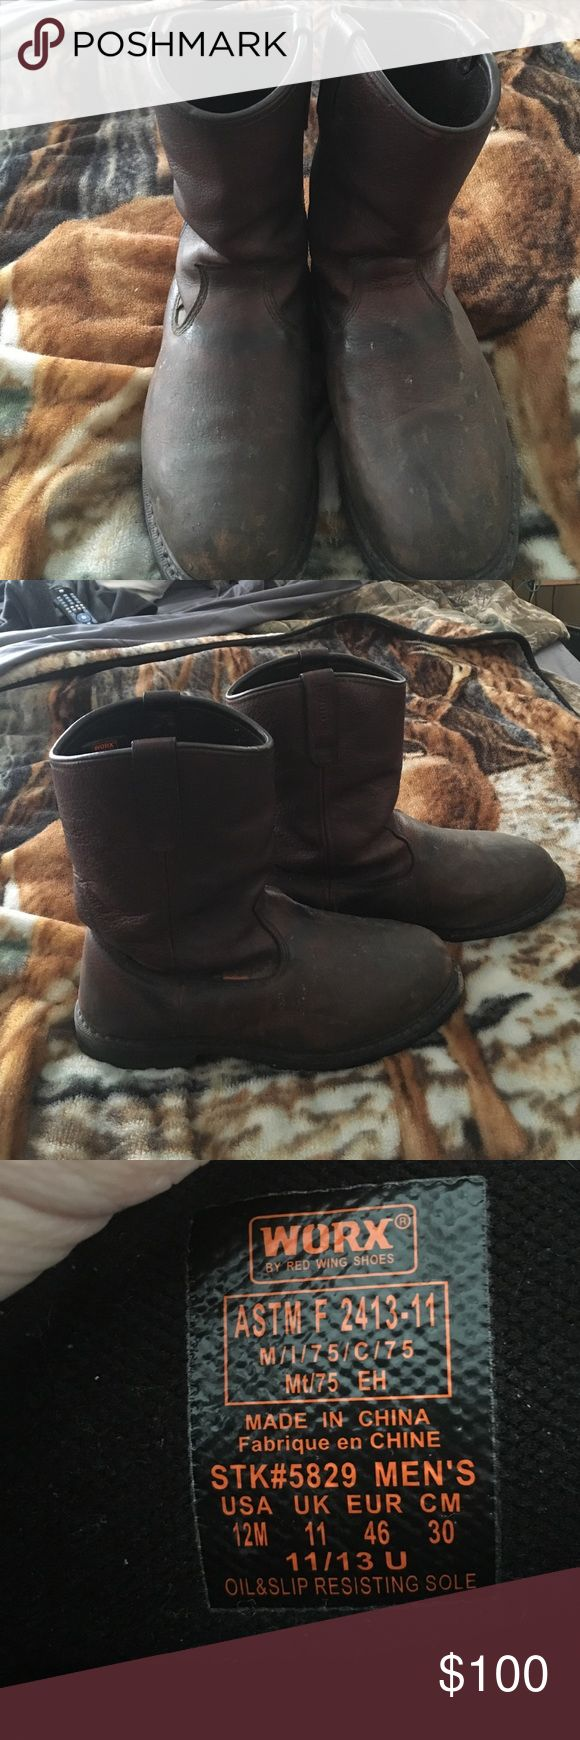 Worx by Red wing Steel toe slip on boots Oil and slip resistant sole, fire proof, great condition, size 12m, brown leather, steel toe (entire top of foot area) Worx by red wing Red Wing Shoes Shoes Boots